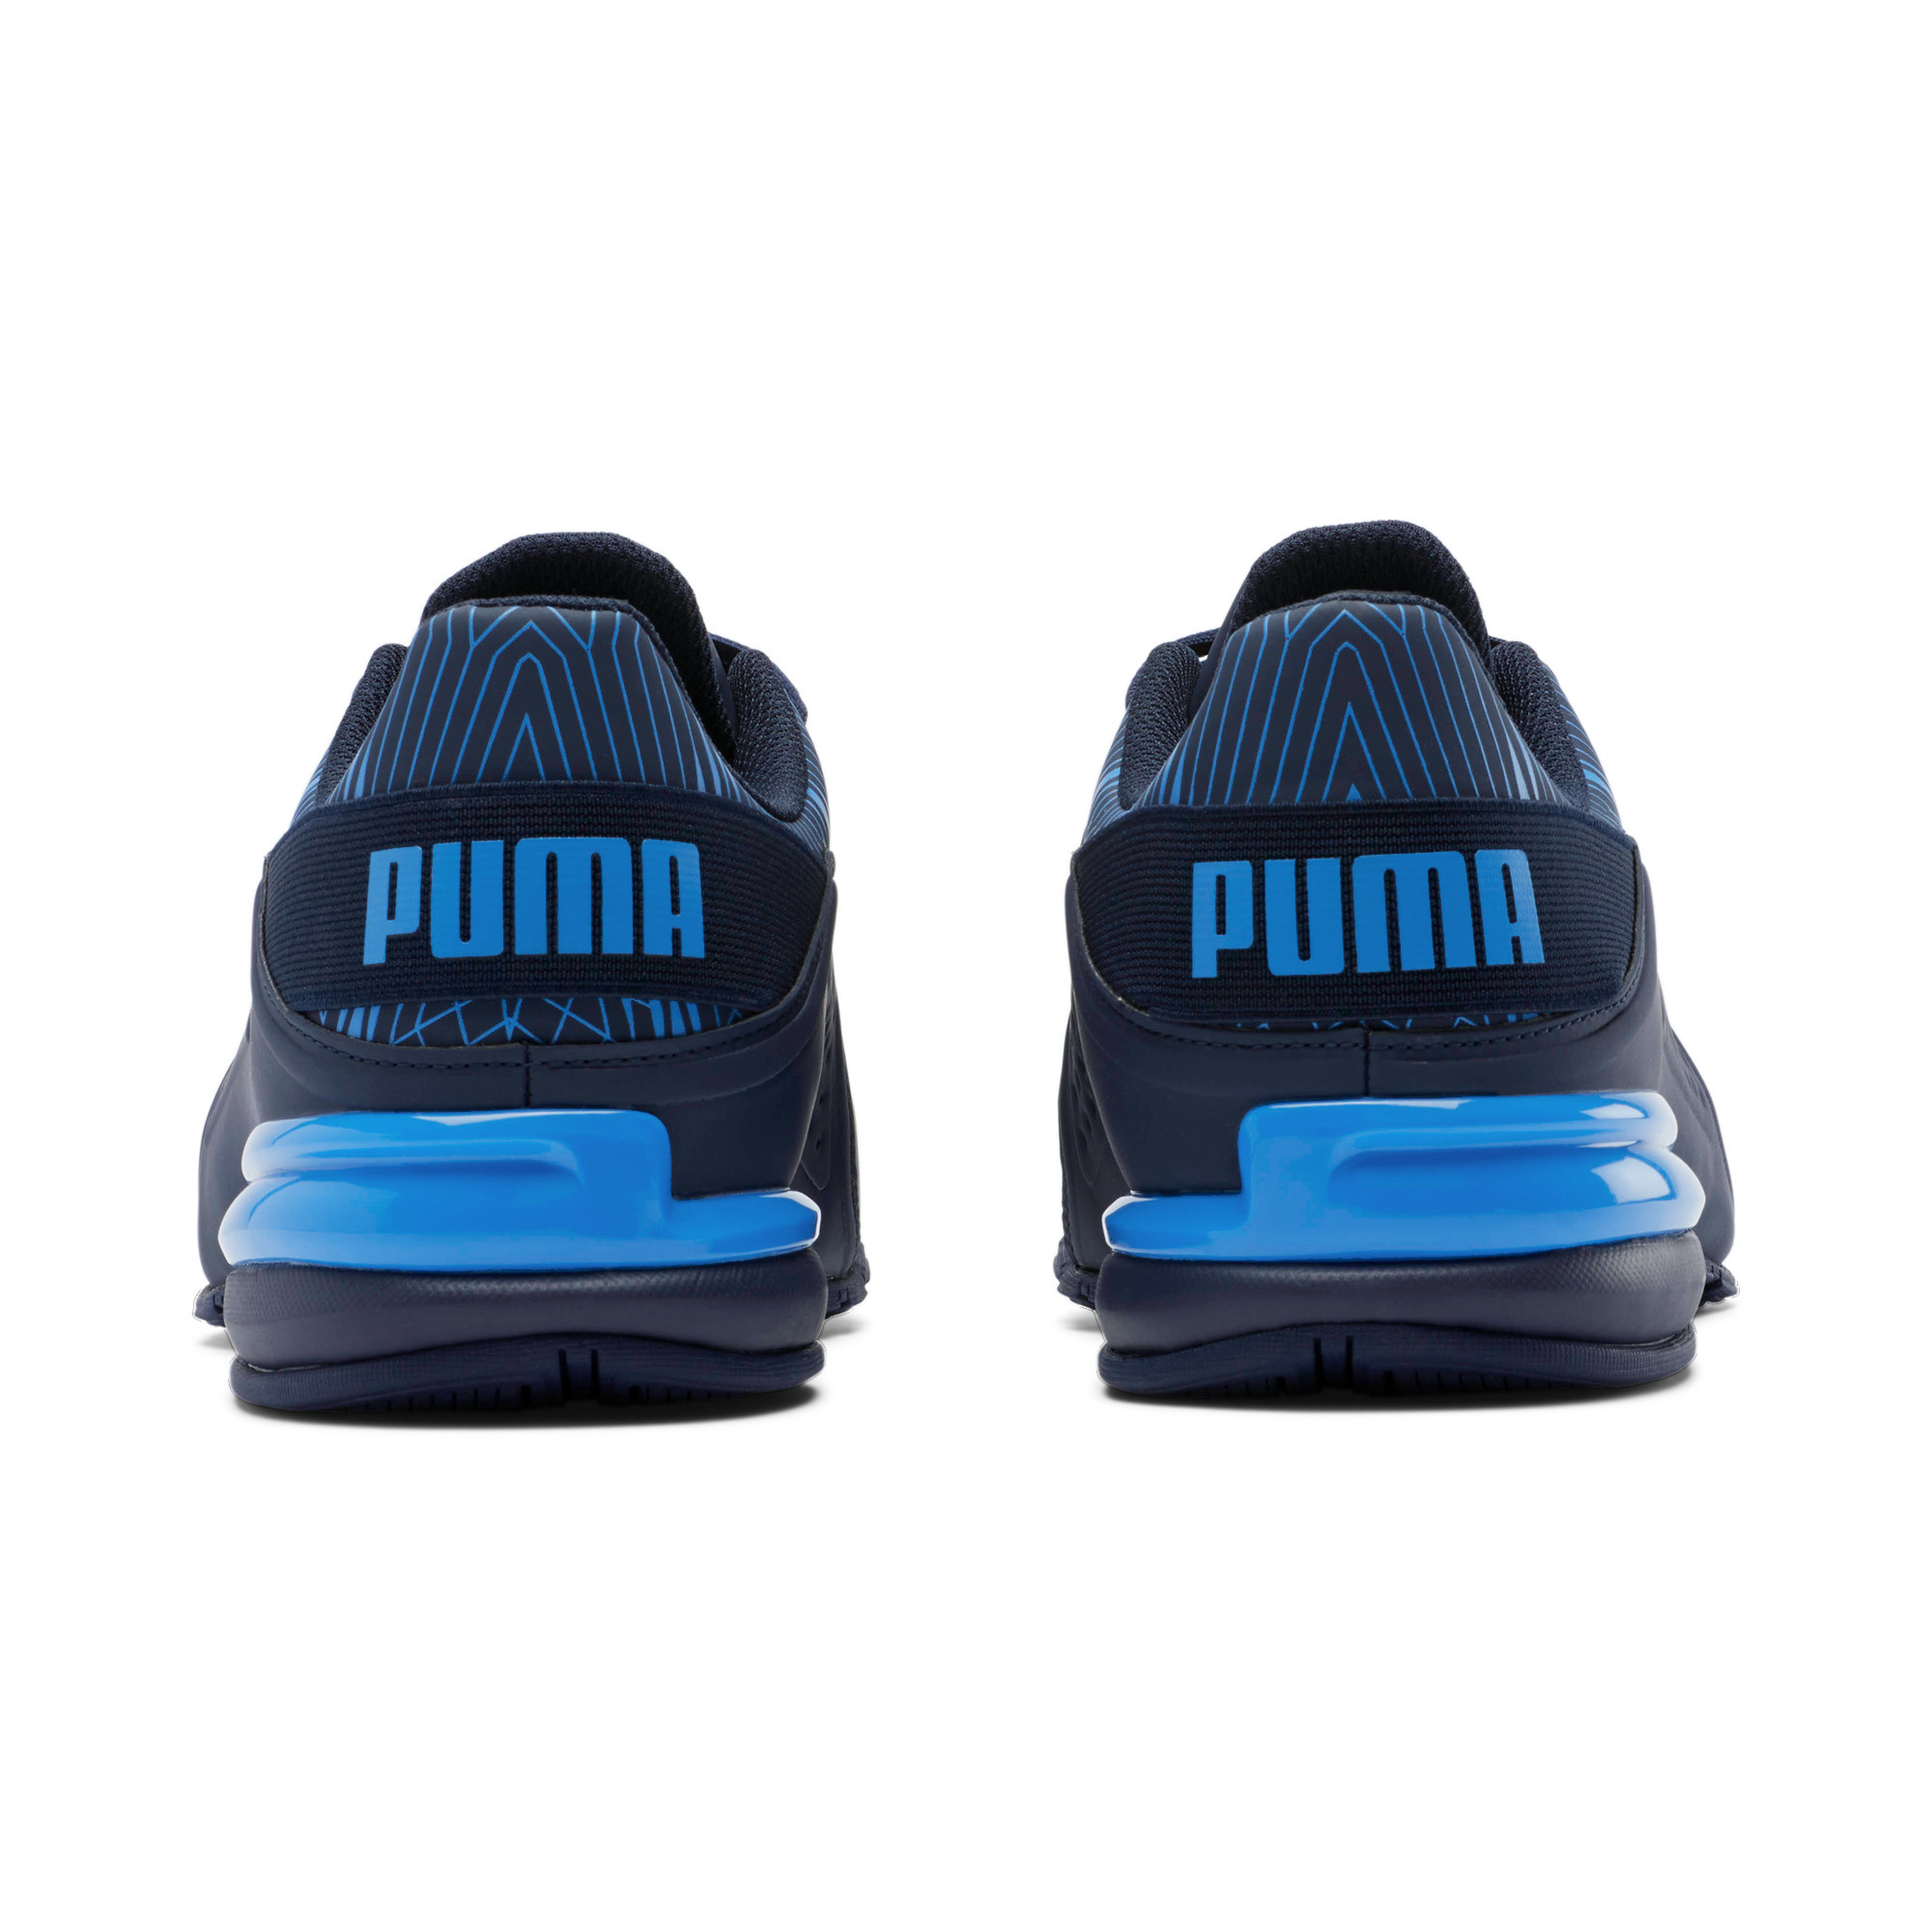 PUMA-Men-039-s-Viz-Runner-Graphic-Sneakers thumbnail 9